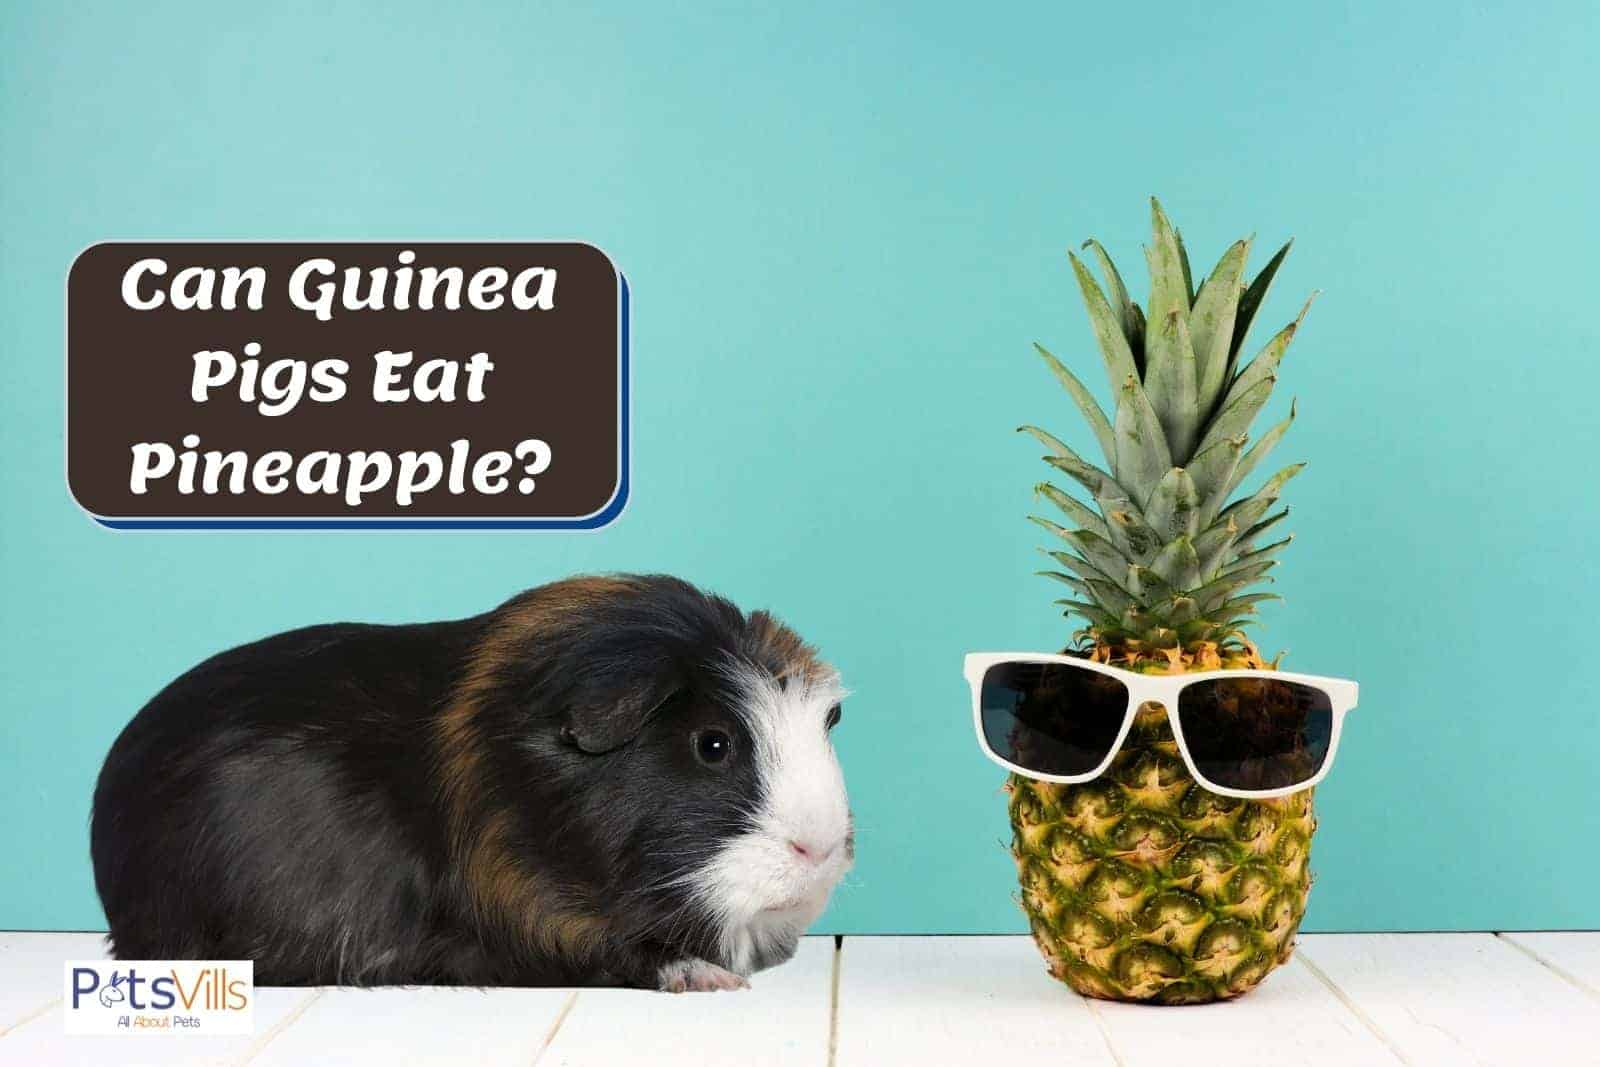 guinea pig and a pineapple: can guinea pigs eat pineapple?